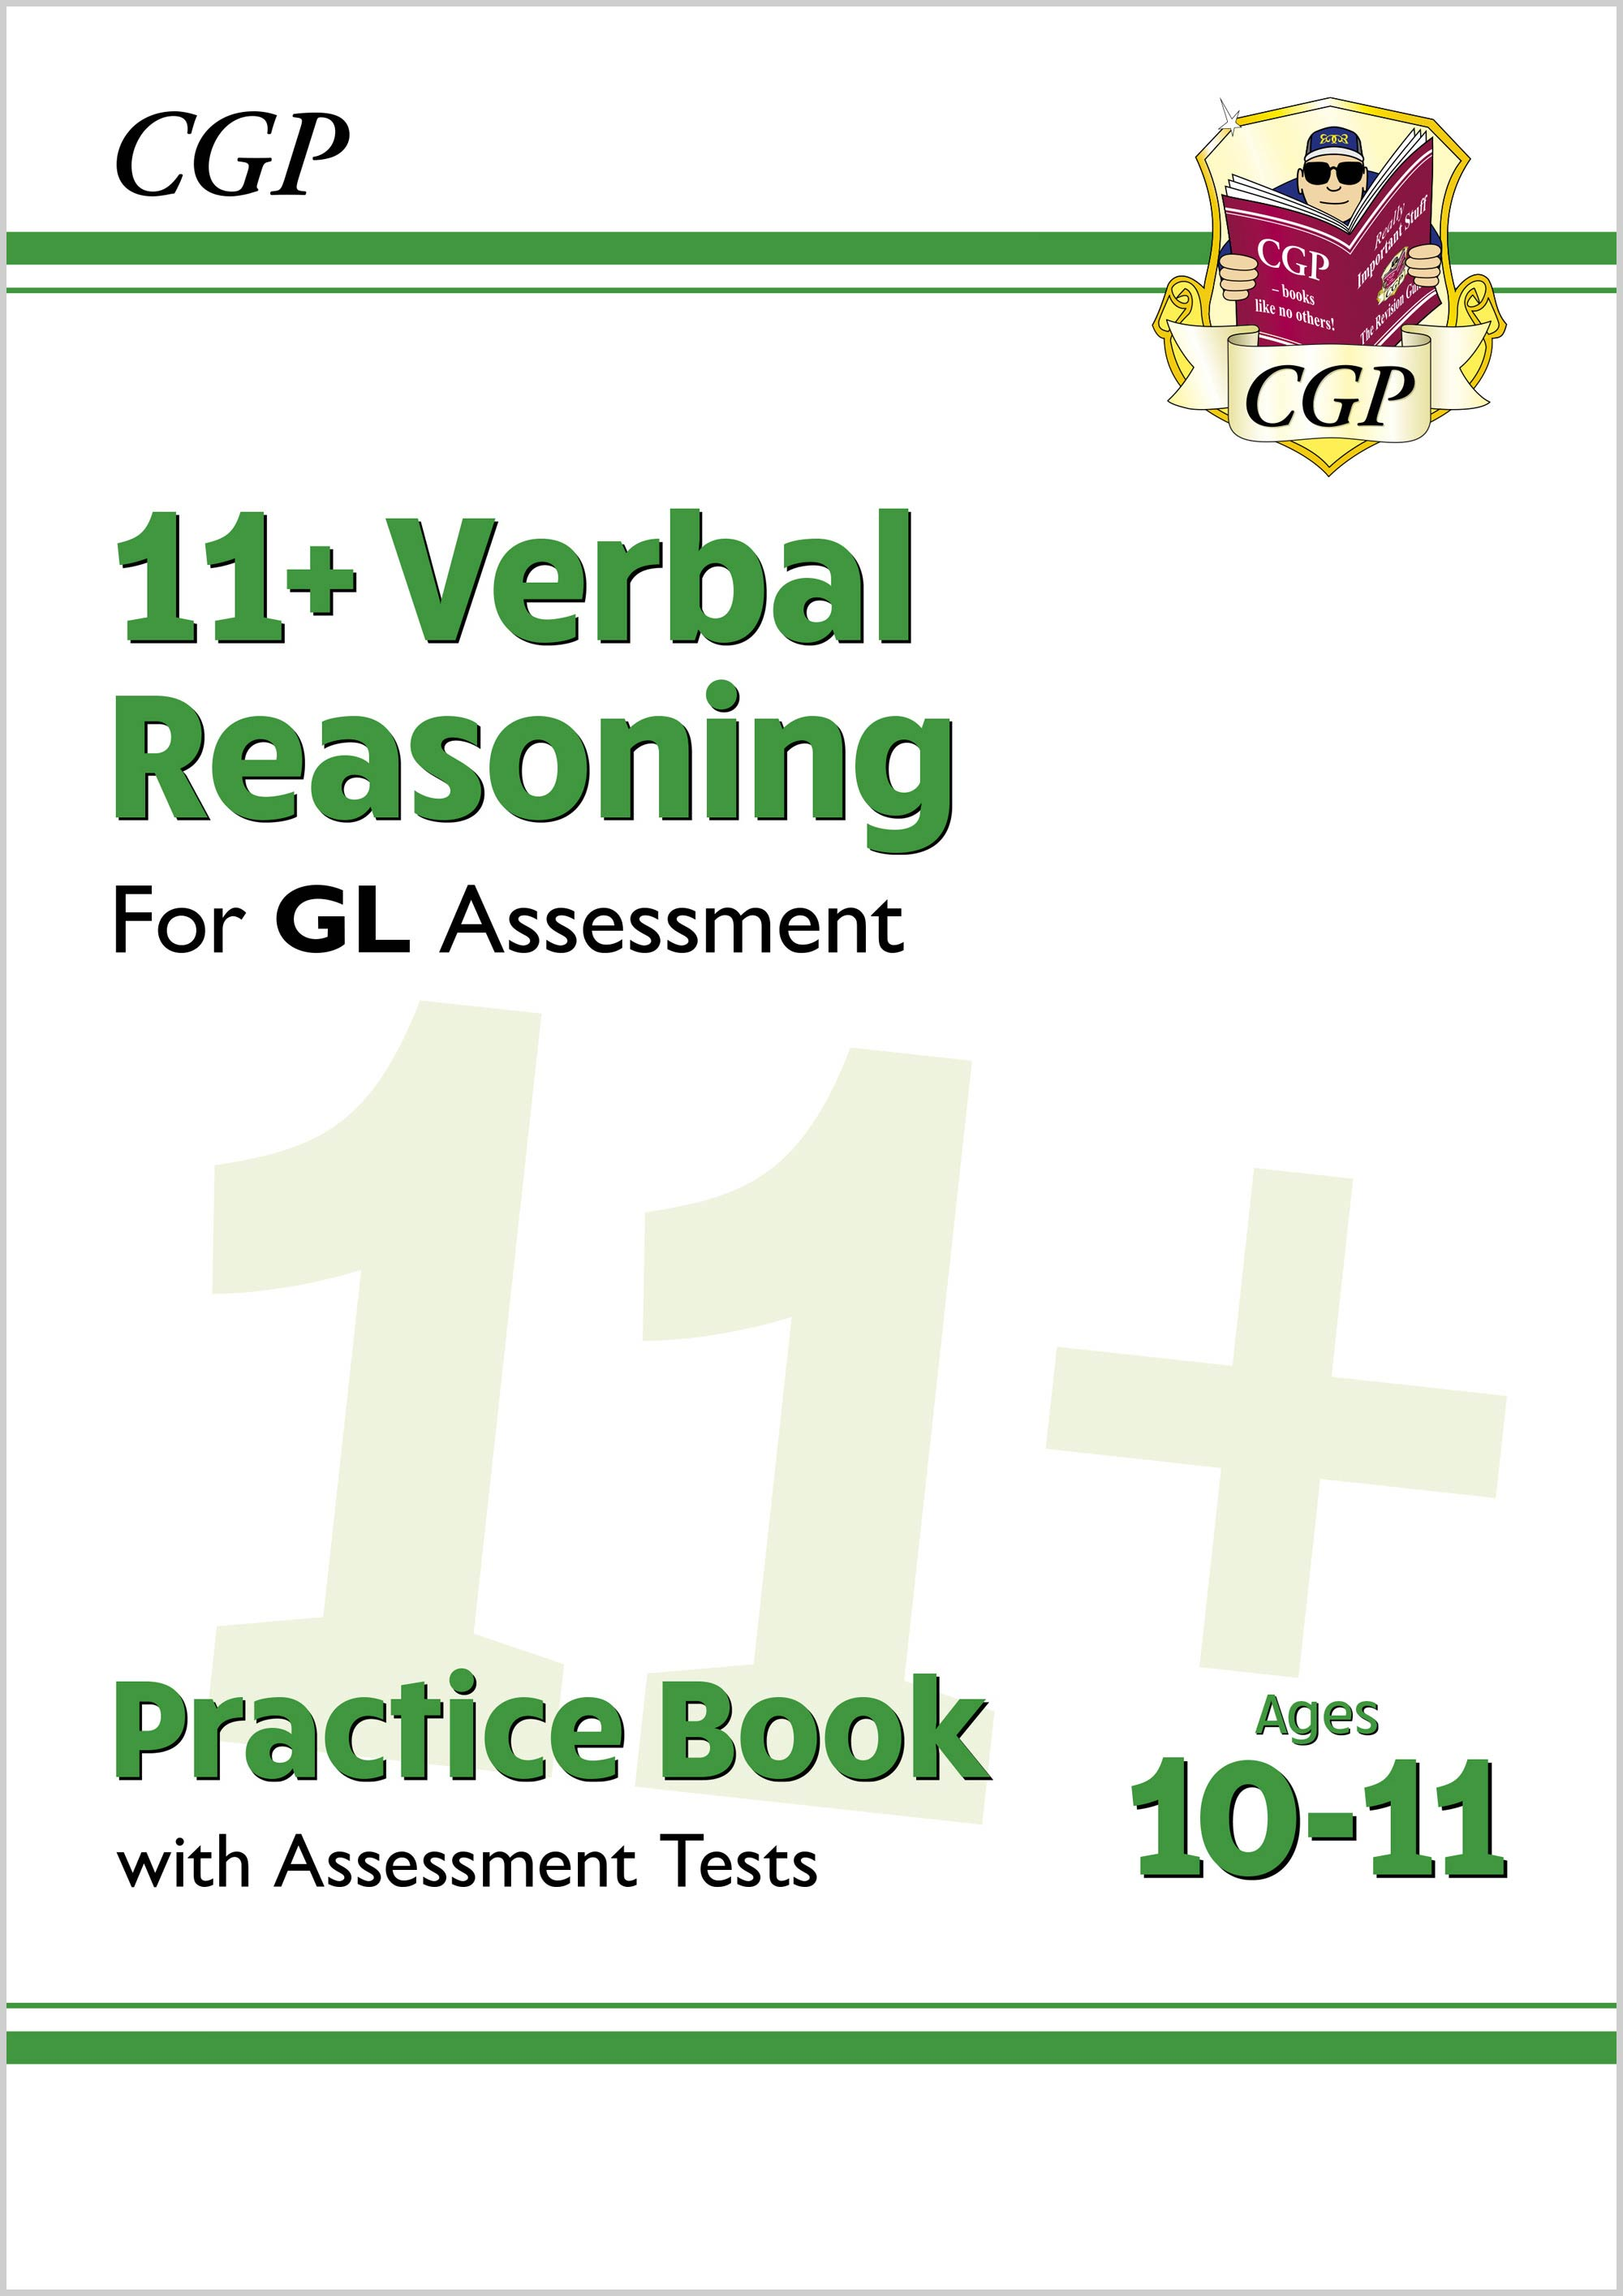 V6QE2DK - New 11+ GL Verbal Reasoning Practice Book & Assessment Tests - Ages 10-11 (with Online Edi